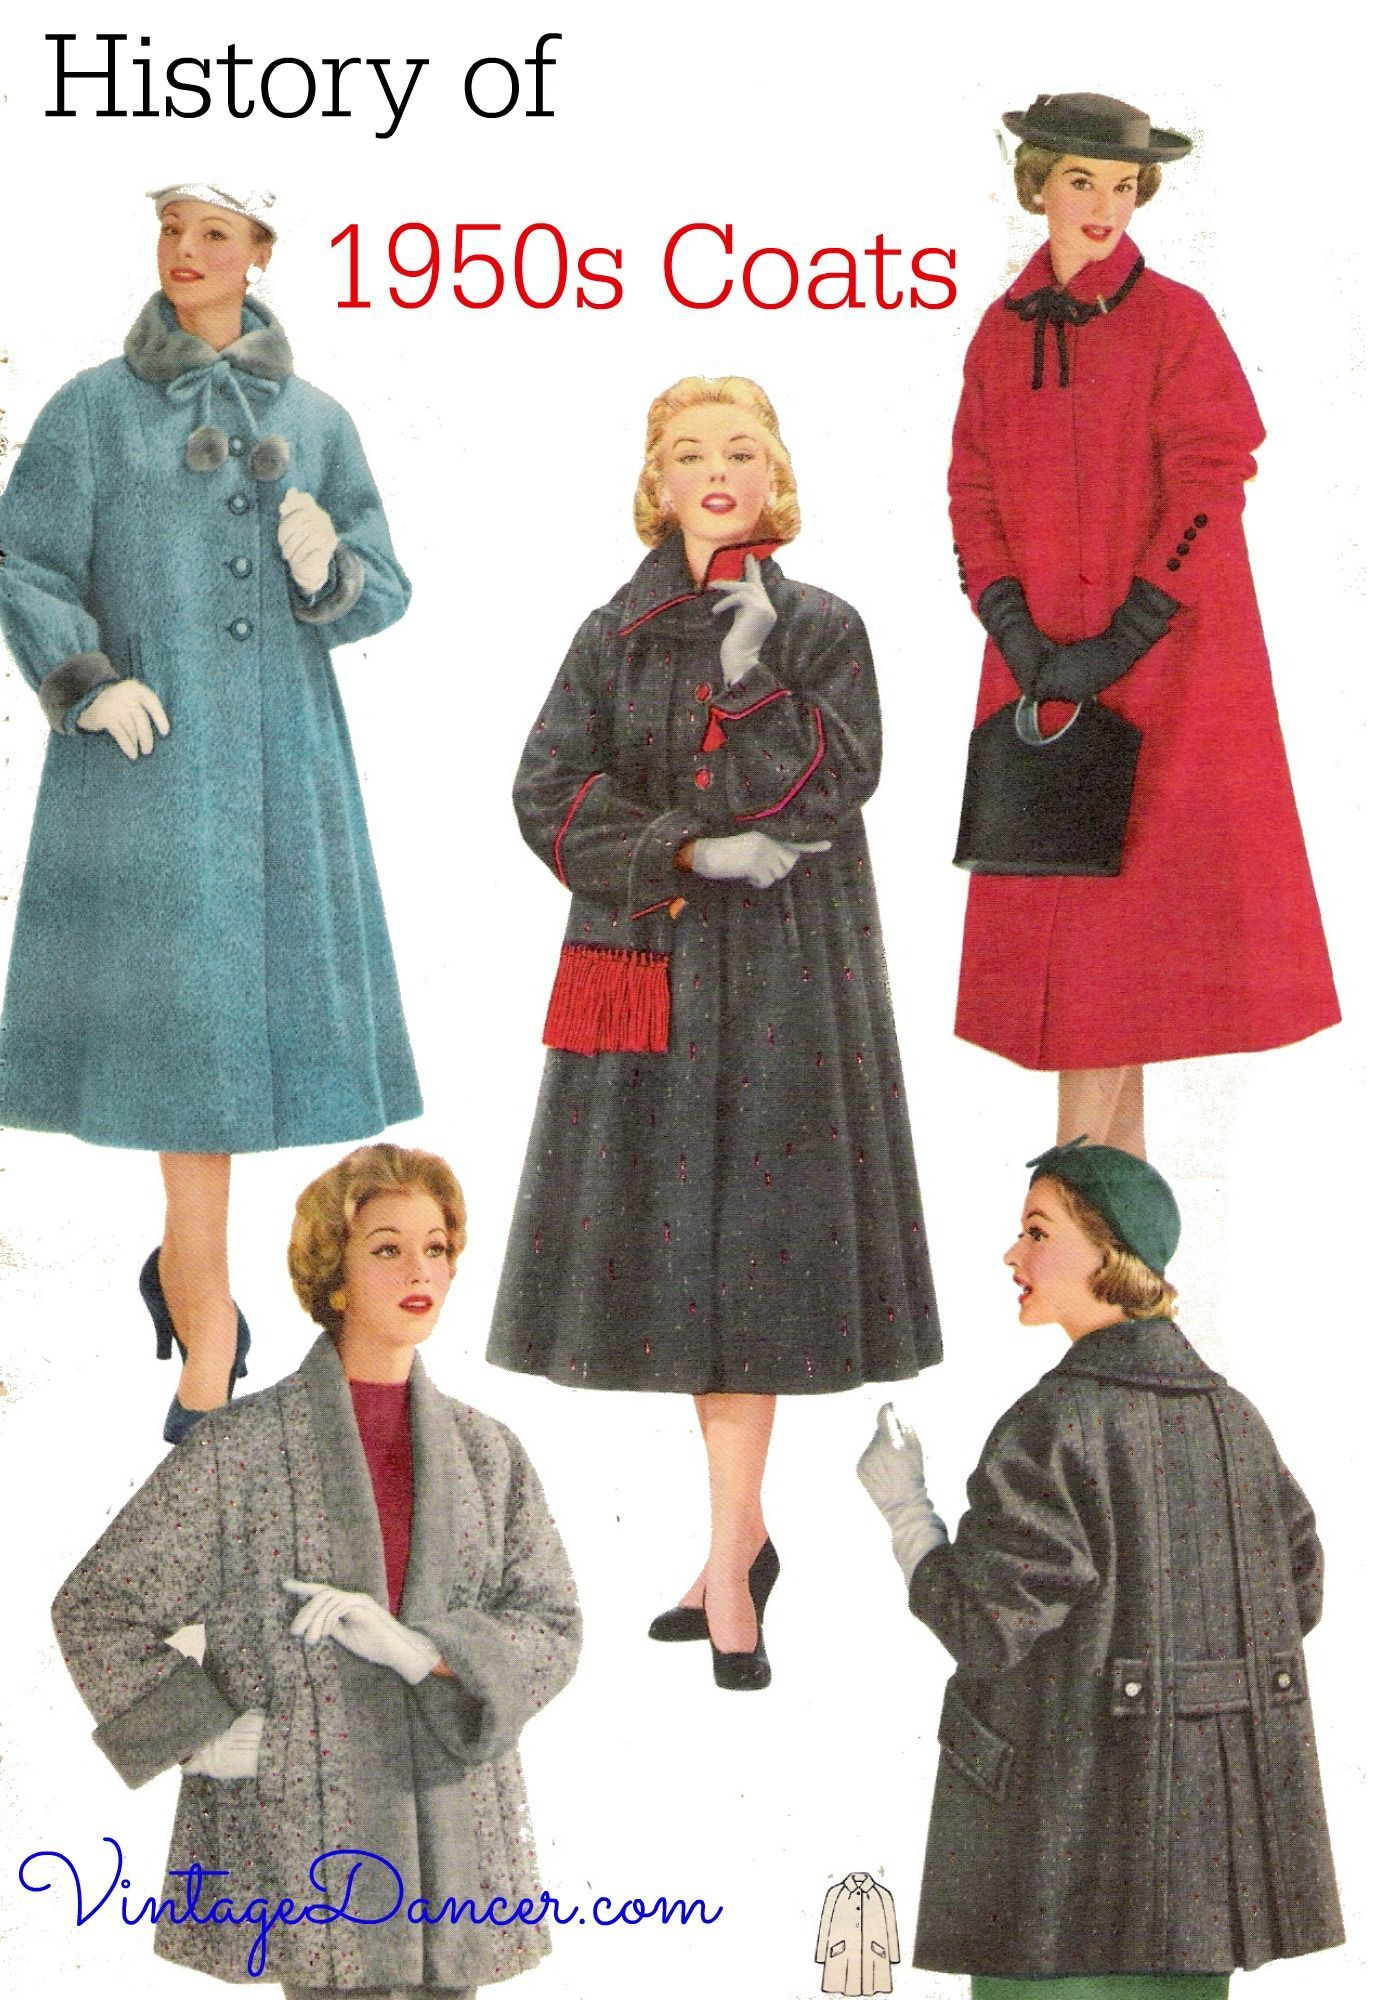 1950S Coats 1950s coats jackets history-- Reference article - Your guide to vintage 1950s style coats: swi… in 2020 - 1950s fashion, Vintage coat, Vintage outfits - 웹